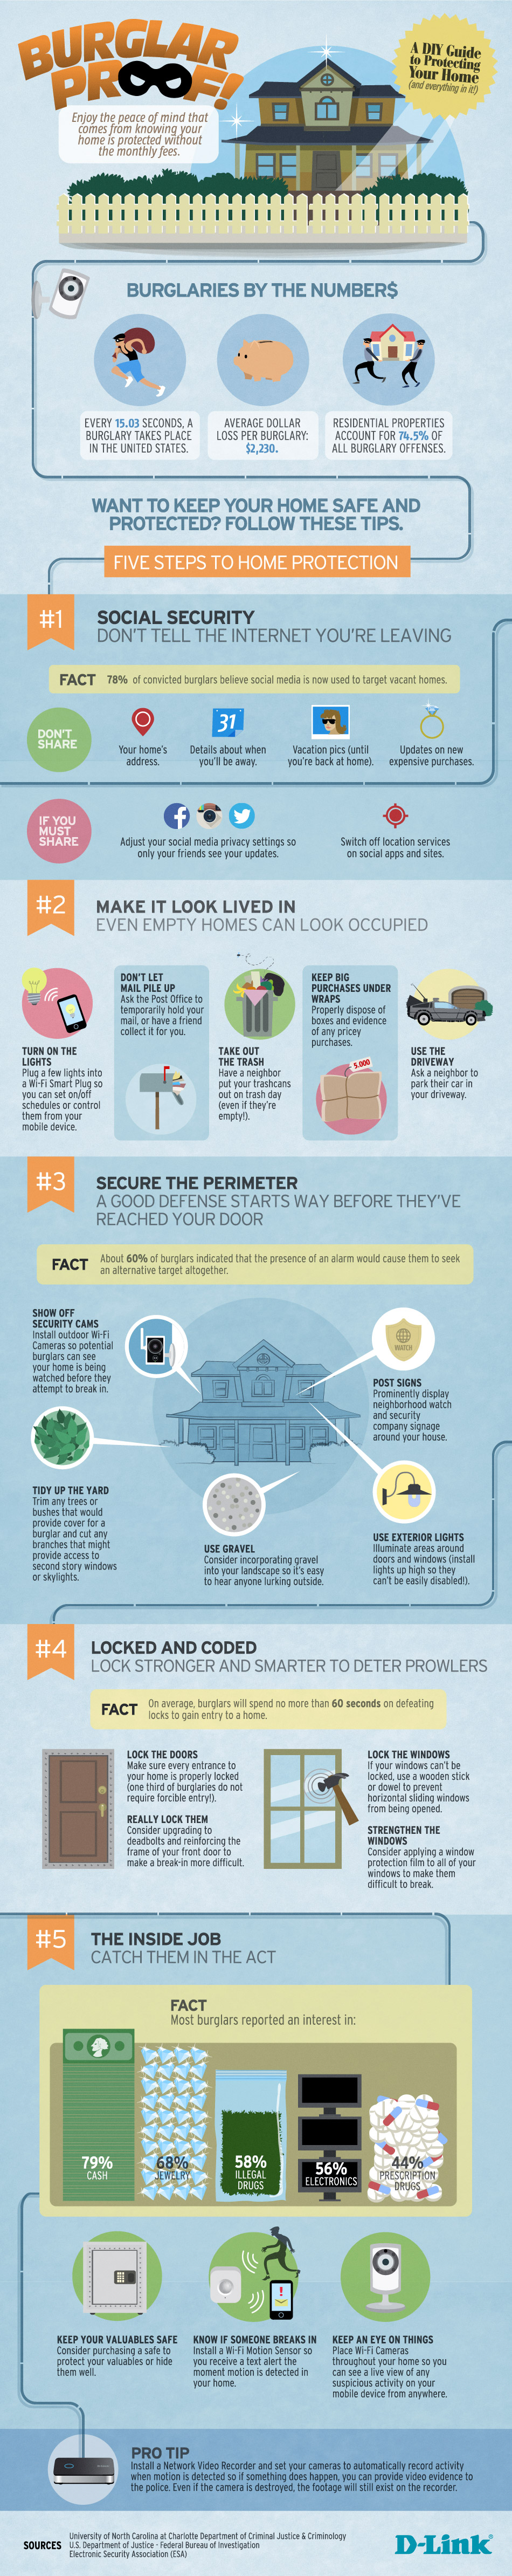 Burglar Proof A Diy Guide To Protecting Your Home D